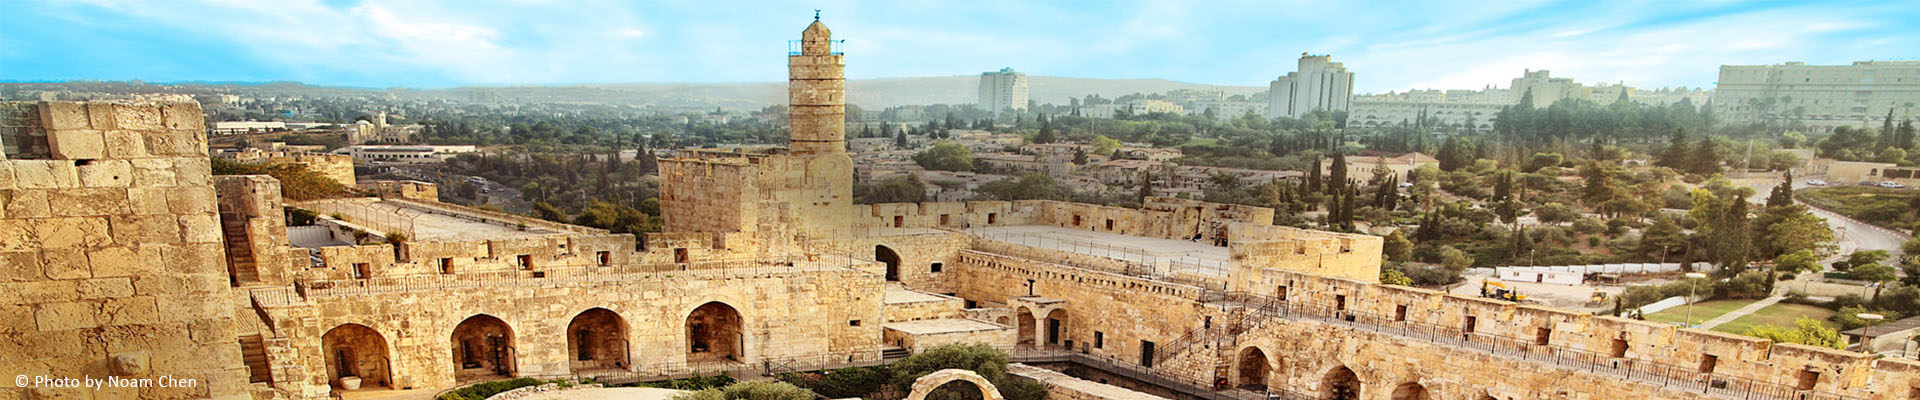 Israel Tour Packages 2019 - 2020